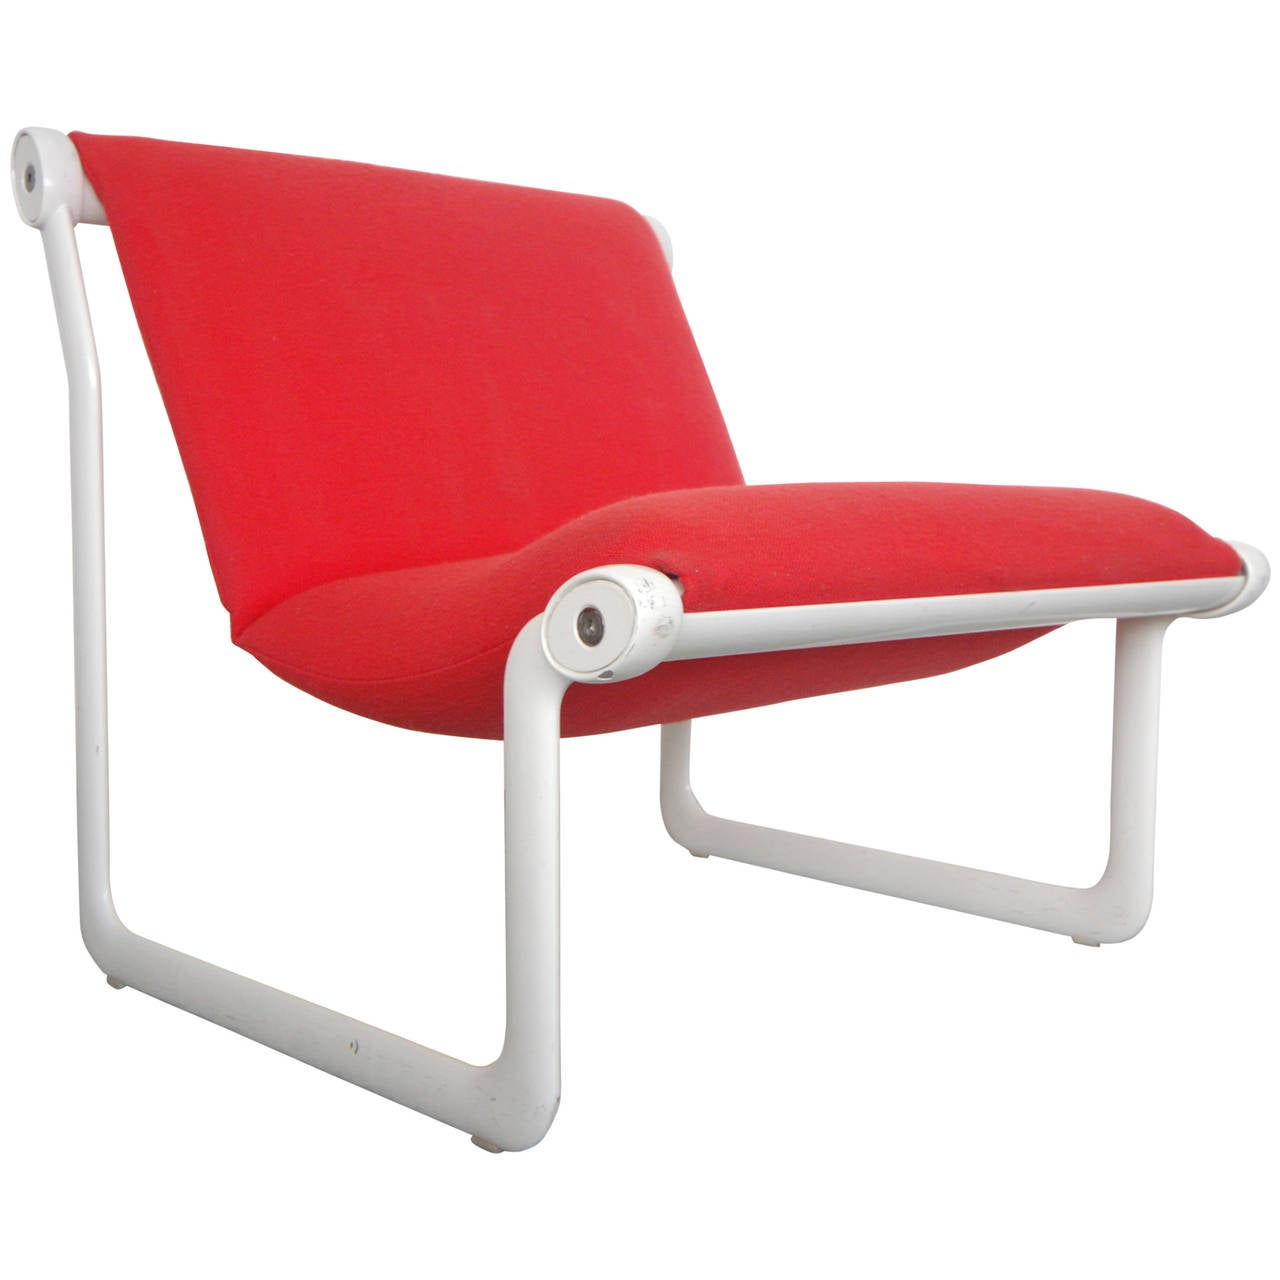 Knoll Egg Chair Knoll Hannah Morrison Sling Lounge Chair At 1stdibs